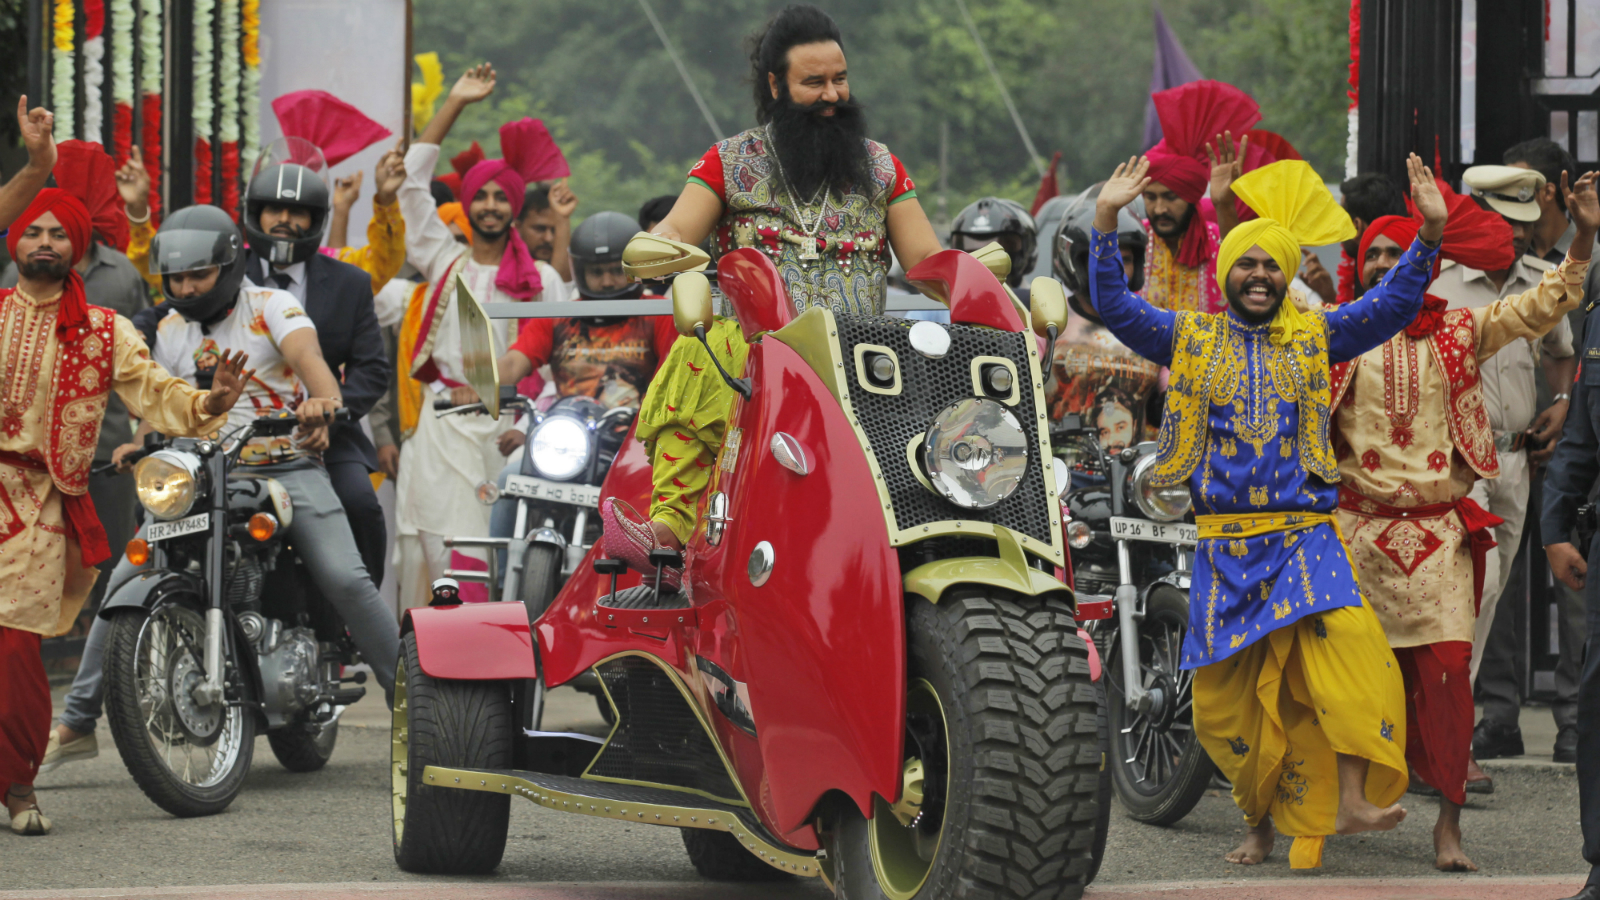 """In this Wednesday, Oct. 5, 2016 photo, Indian spiritual guru, who calls himself Saint Dr. Gurmeet Ram Rahim Singh Ji Insan, arrives for a press conference ahead of the release of his new film """"MSG, The Warrior Lion Heart,"""" in New Delhi, India. The leader of the quasi-religious sect has launched a film franchise in which he stars as Messenger of God, or MSG for short, with divine powers to save the world. He claims to have 50 million followers and runs a spiritual empire that promotes vegetarianism and campaigns against drug addiction. With a guaranteed audience among his followers, Insan said he's had little trouble getting his films released commercially in cinemas. (AP Photo/Tsering Topgyal, File"""